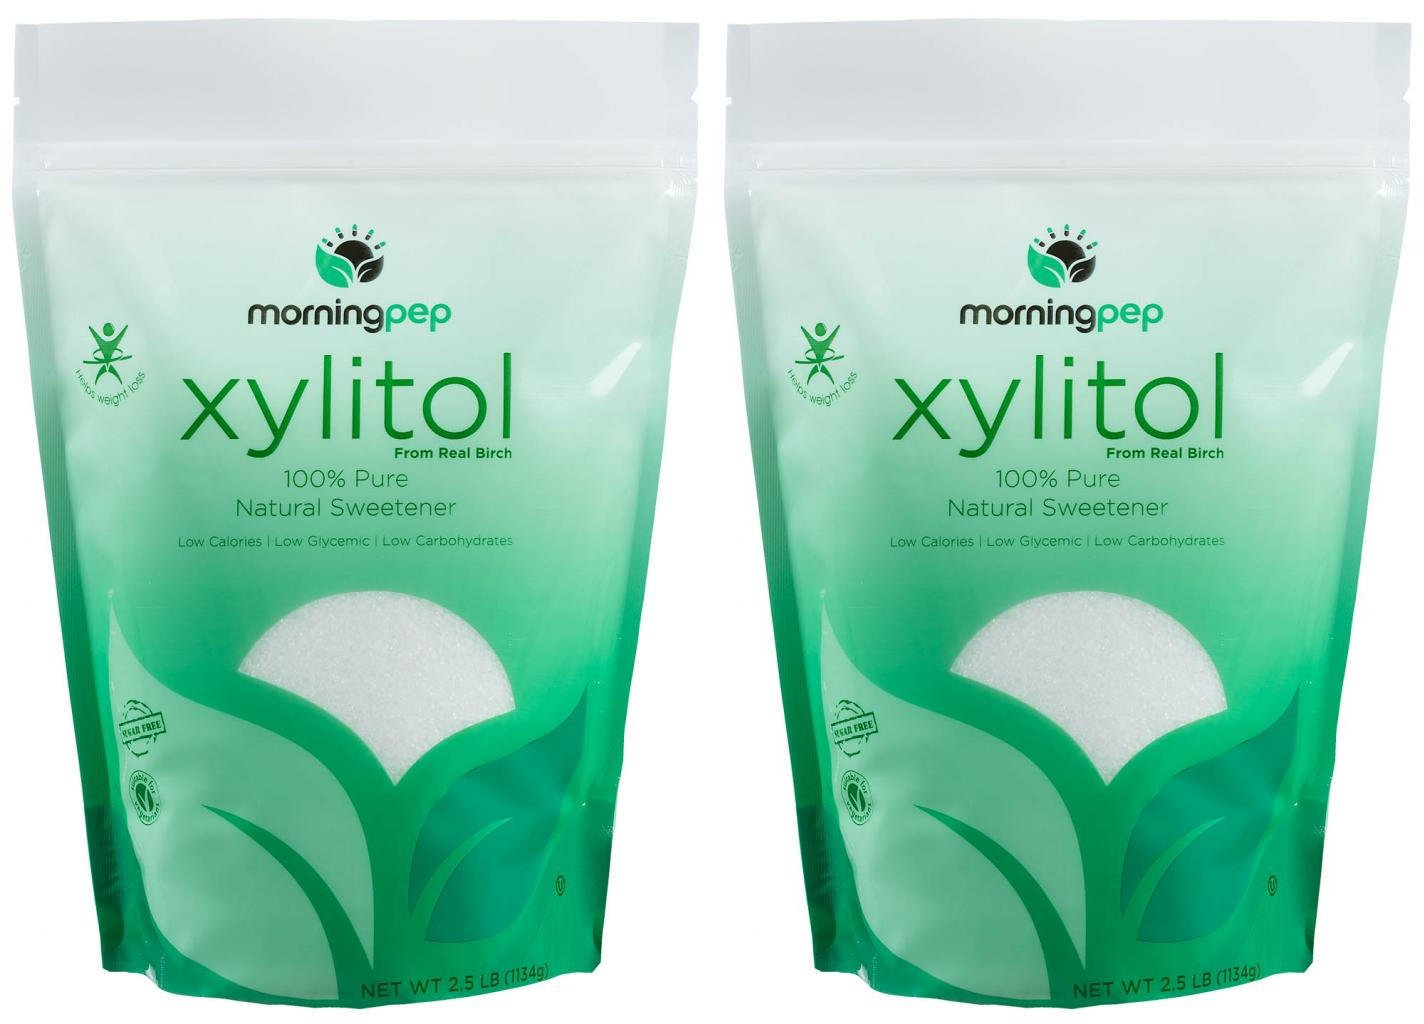 Pack of 2 Morning Pep Pure Birch Xylitol (Keto Diet Friendly) Sweetener 2.5 LB (Not from Corn) Non GMO - Kosher - Gluten Free - Product of USA. Total 5 Lbs (80 OZ) by Morning Pep (Image #1)